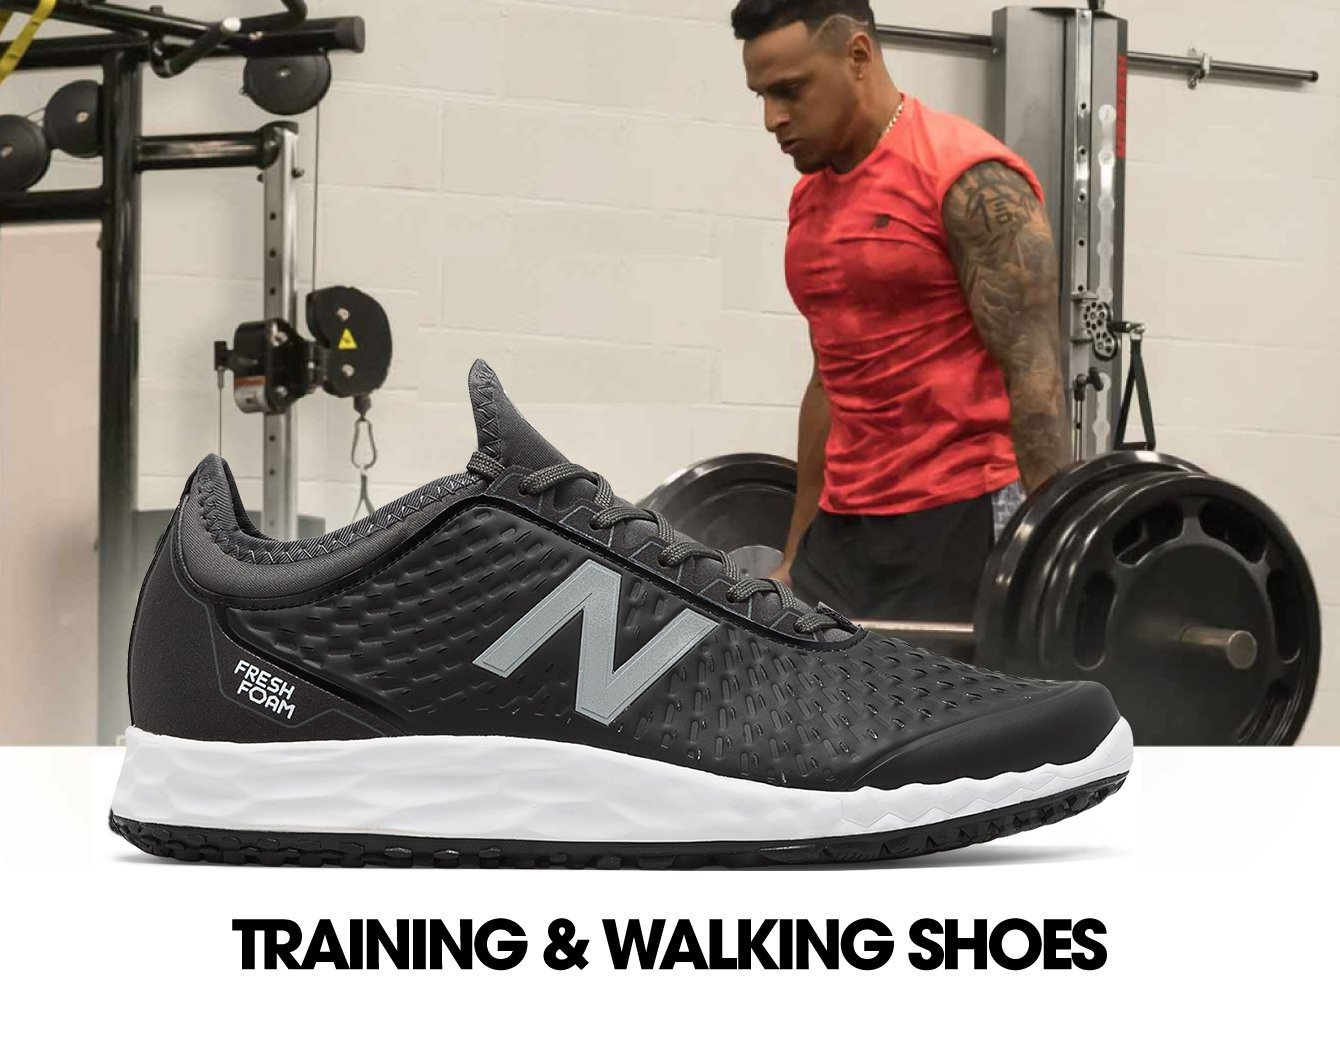 Training and Walking Shoes